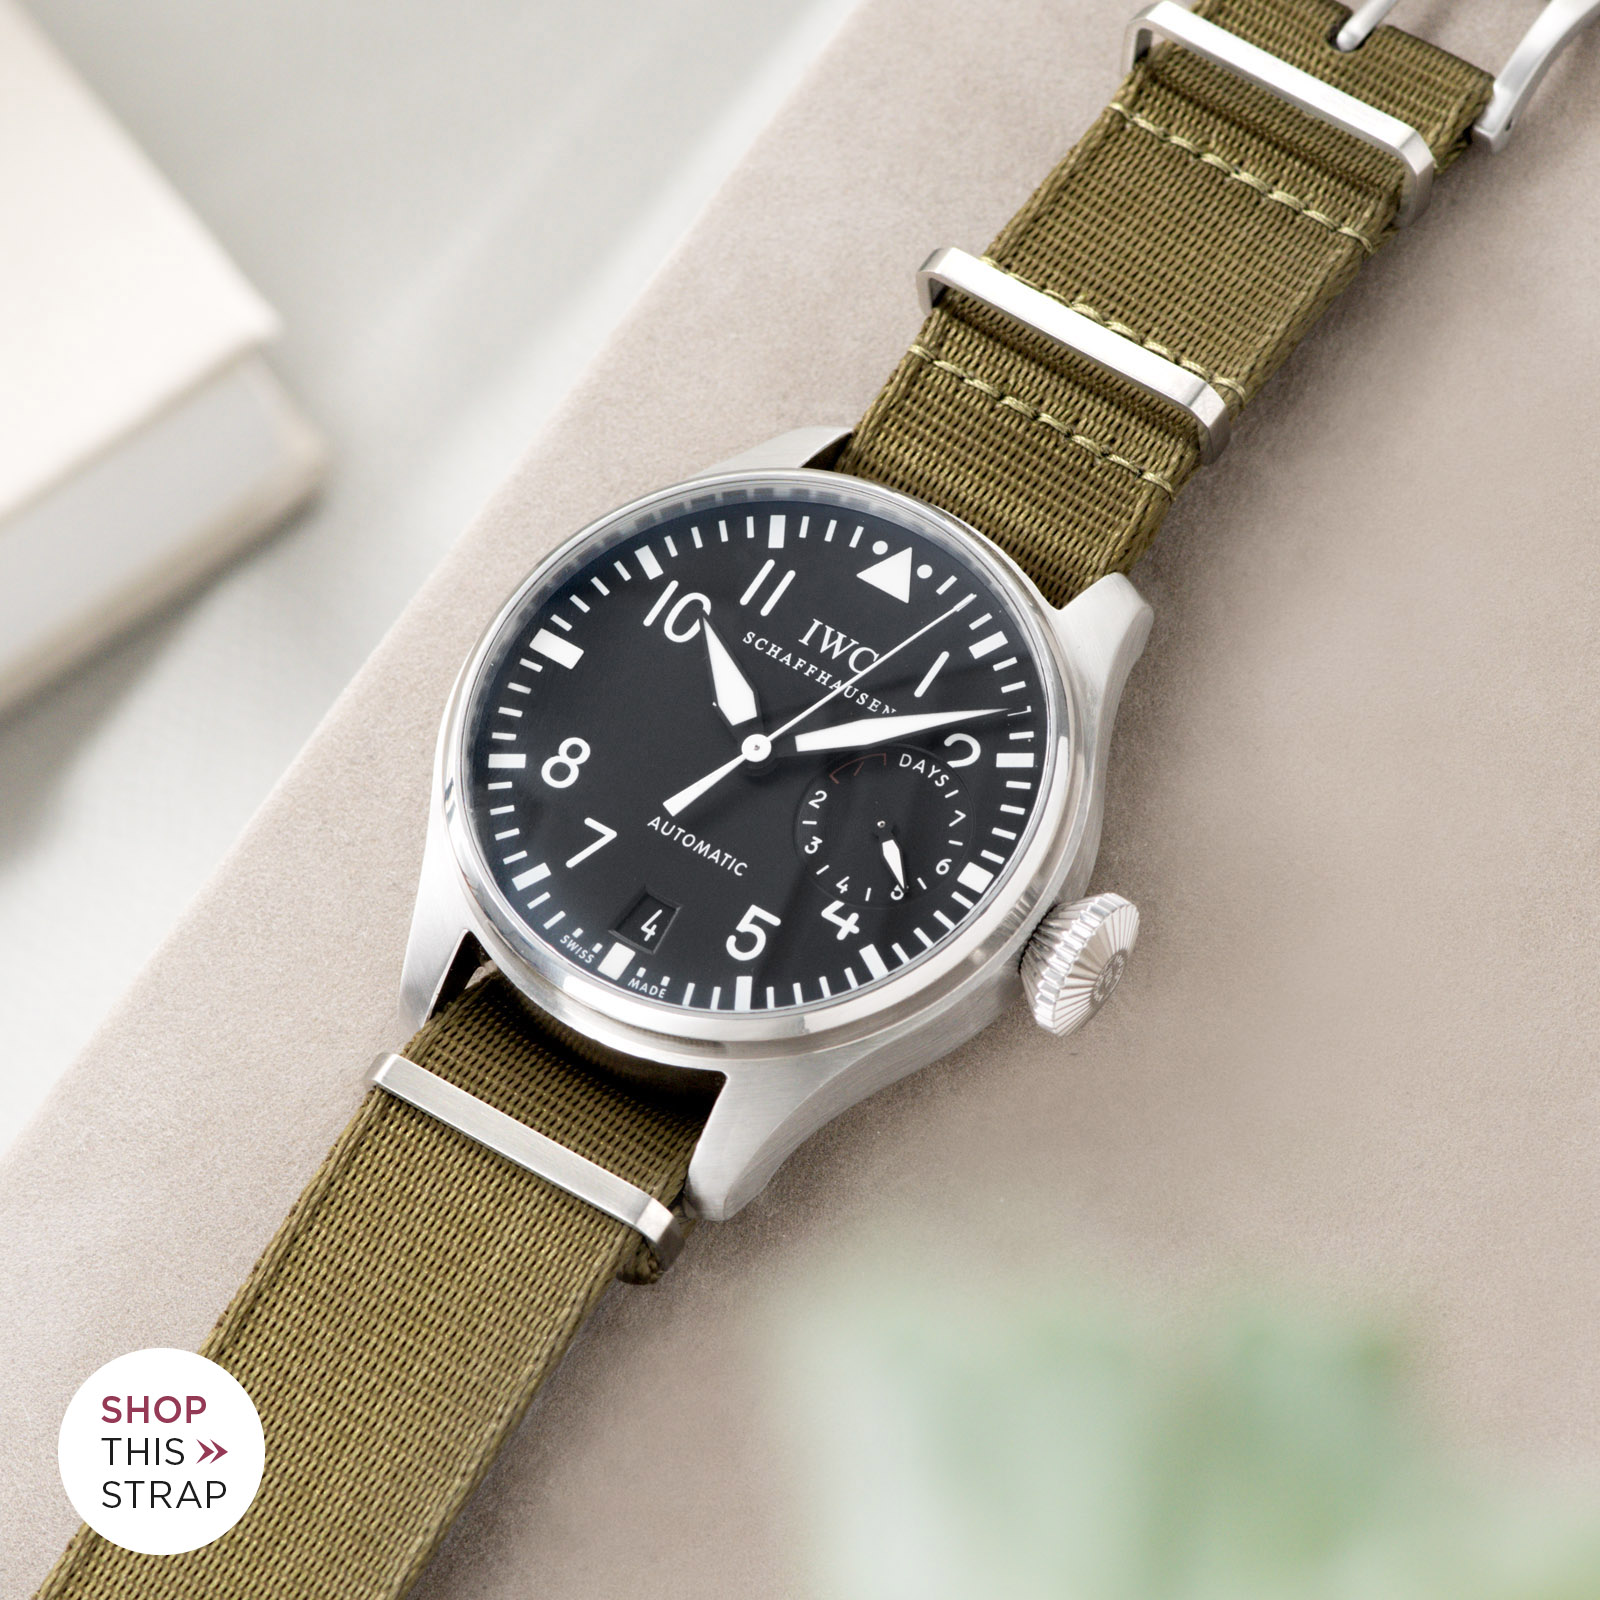 Bulang and Sons_Strap Guide_IWC Big Pilot ref IW5004_Deluxe Nylon Nato Watch Strap Olive Drab Green